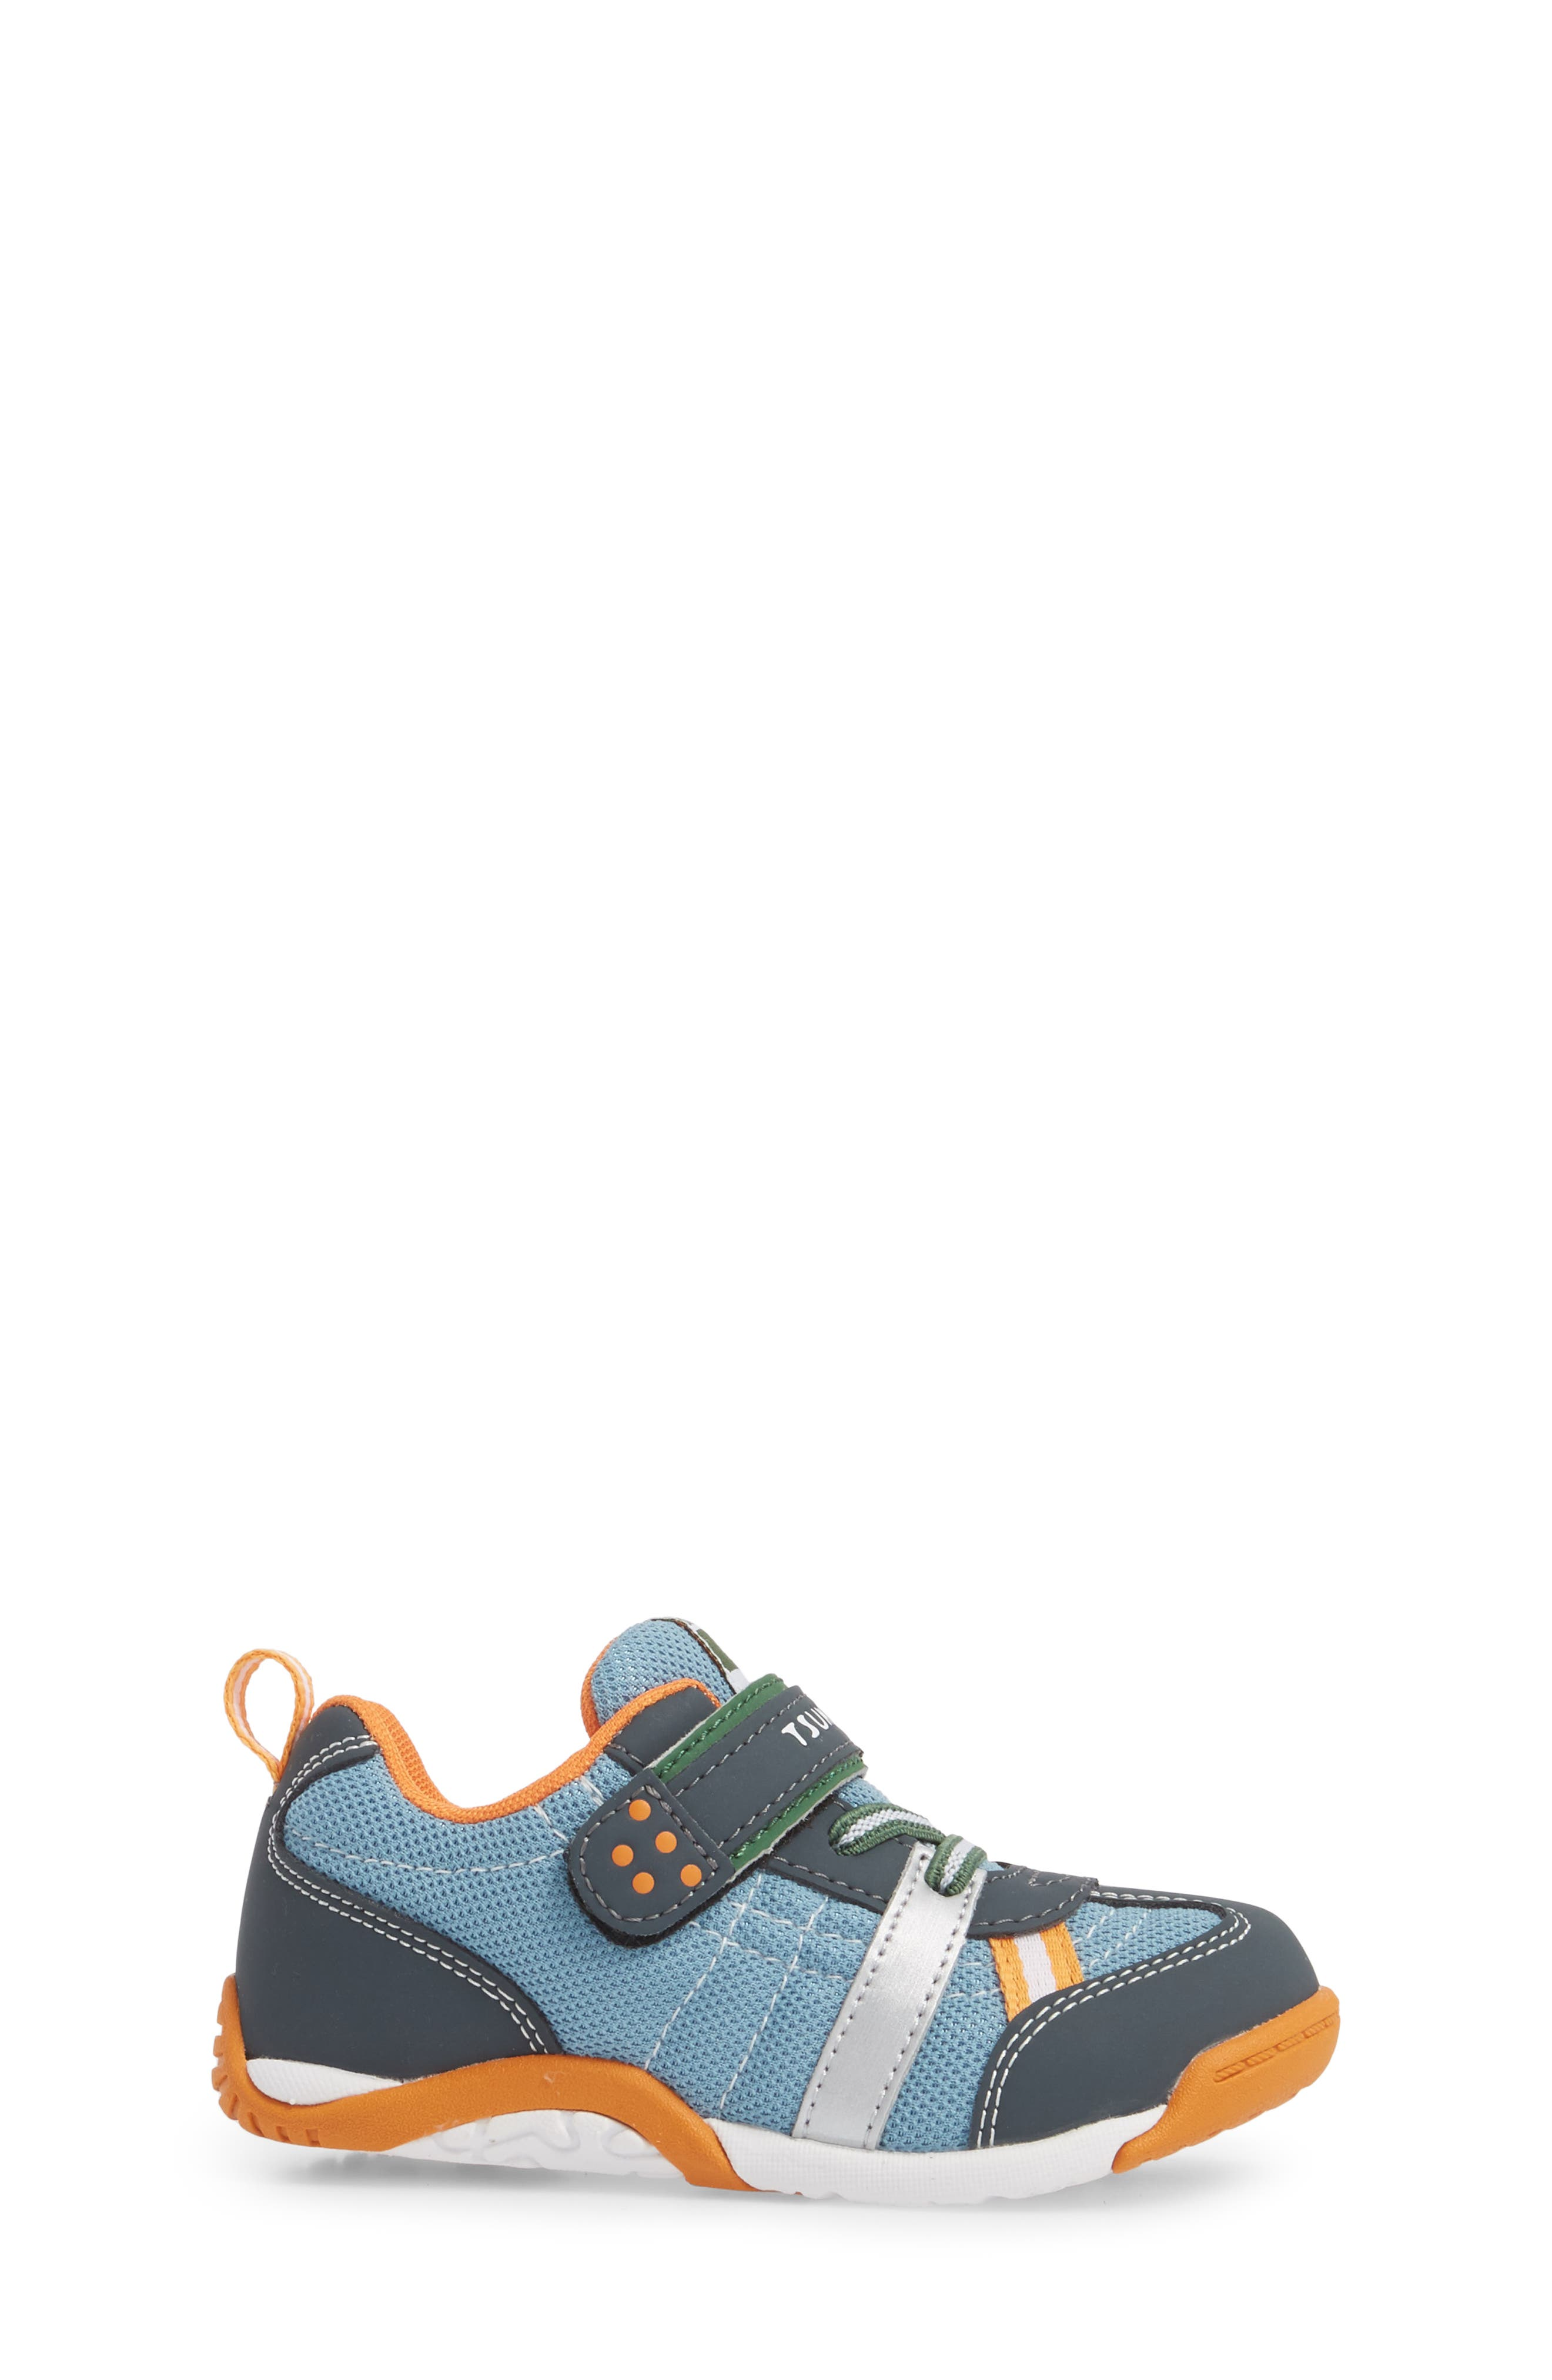 Kaz Washable Sneaker,                             Alternate thumbnail 3, color,                             CHARCOAL/ SEA